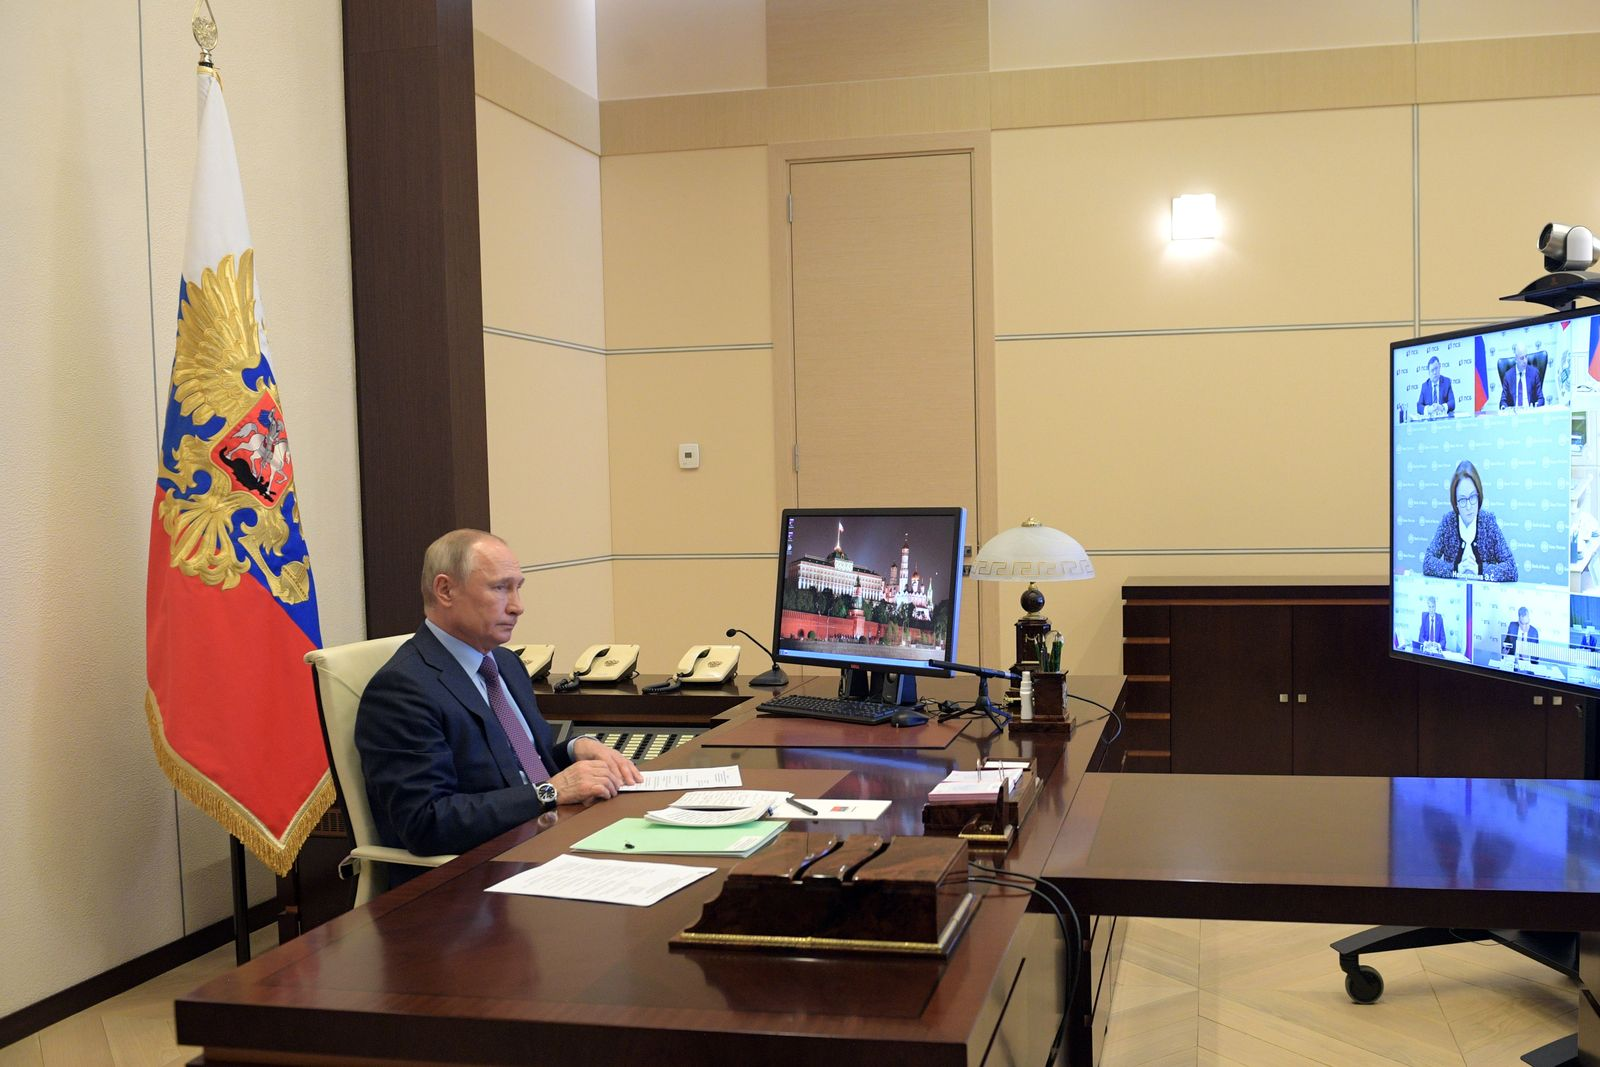 Russian President Putin chairs a meeting via a video link outside Moscow